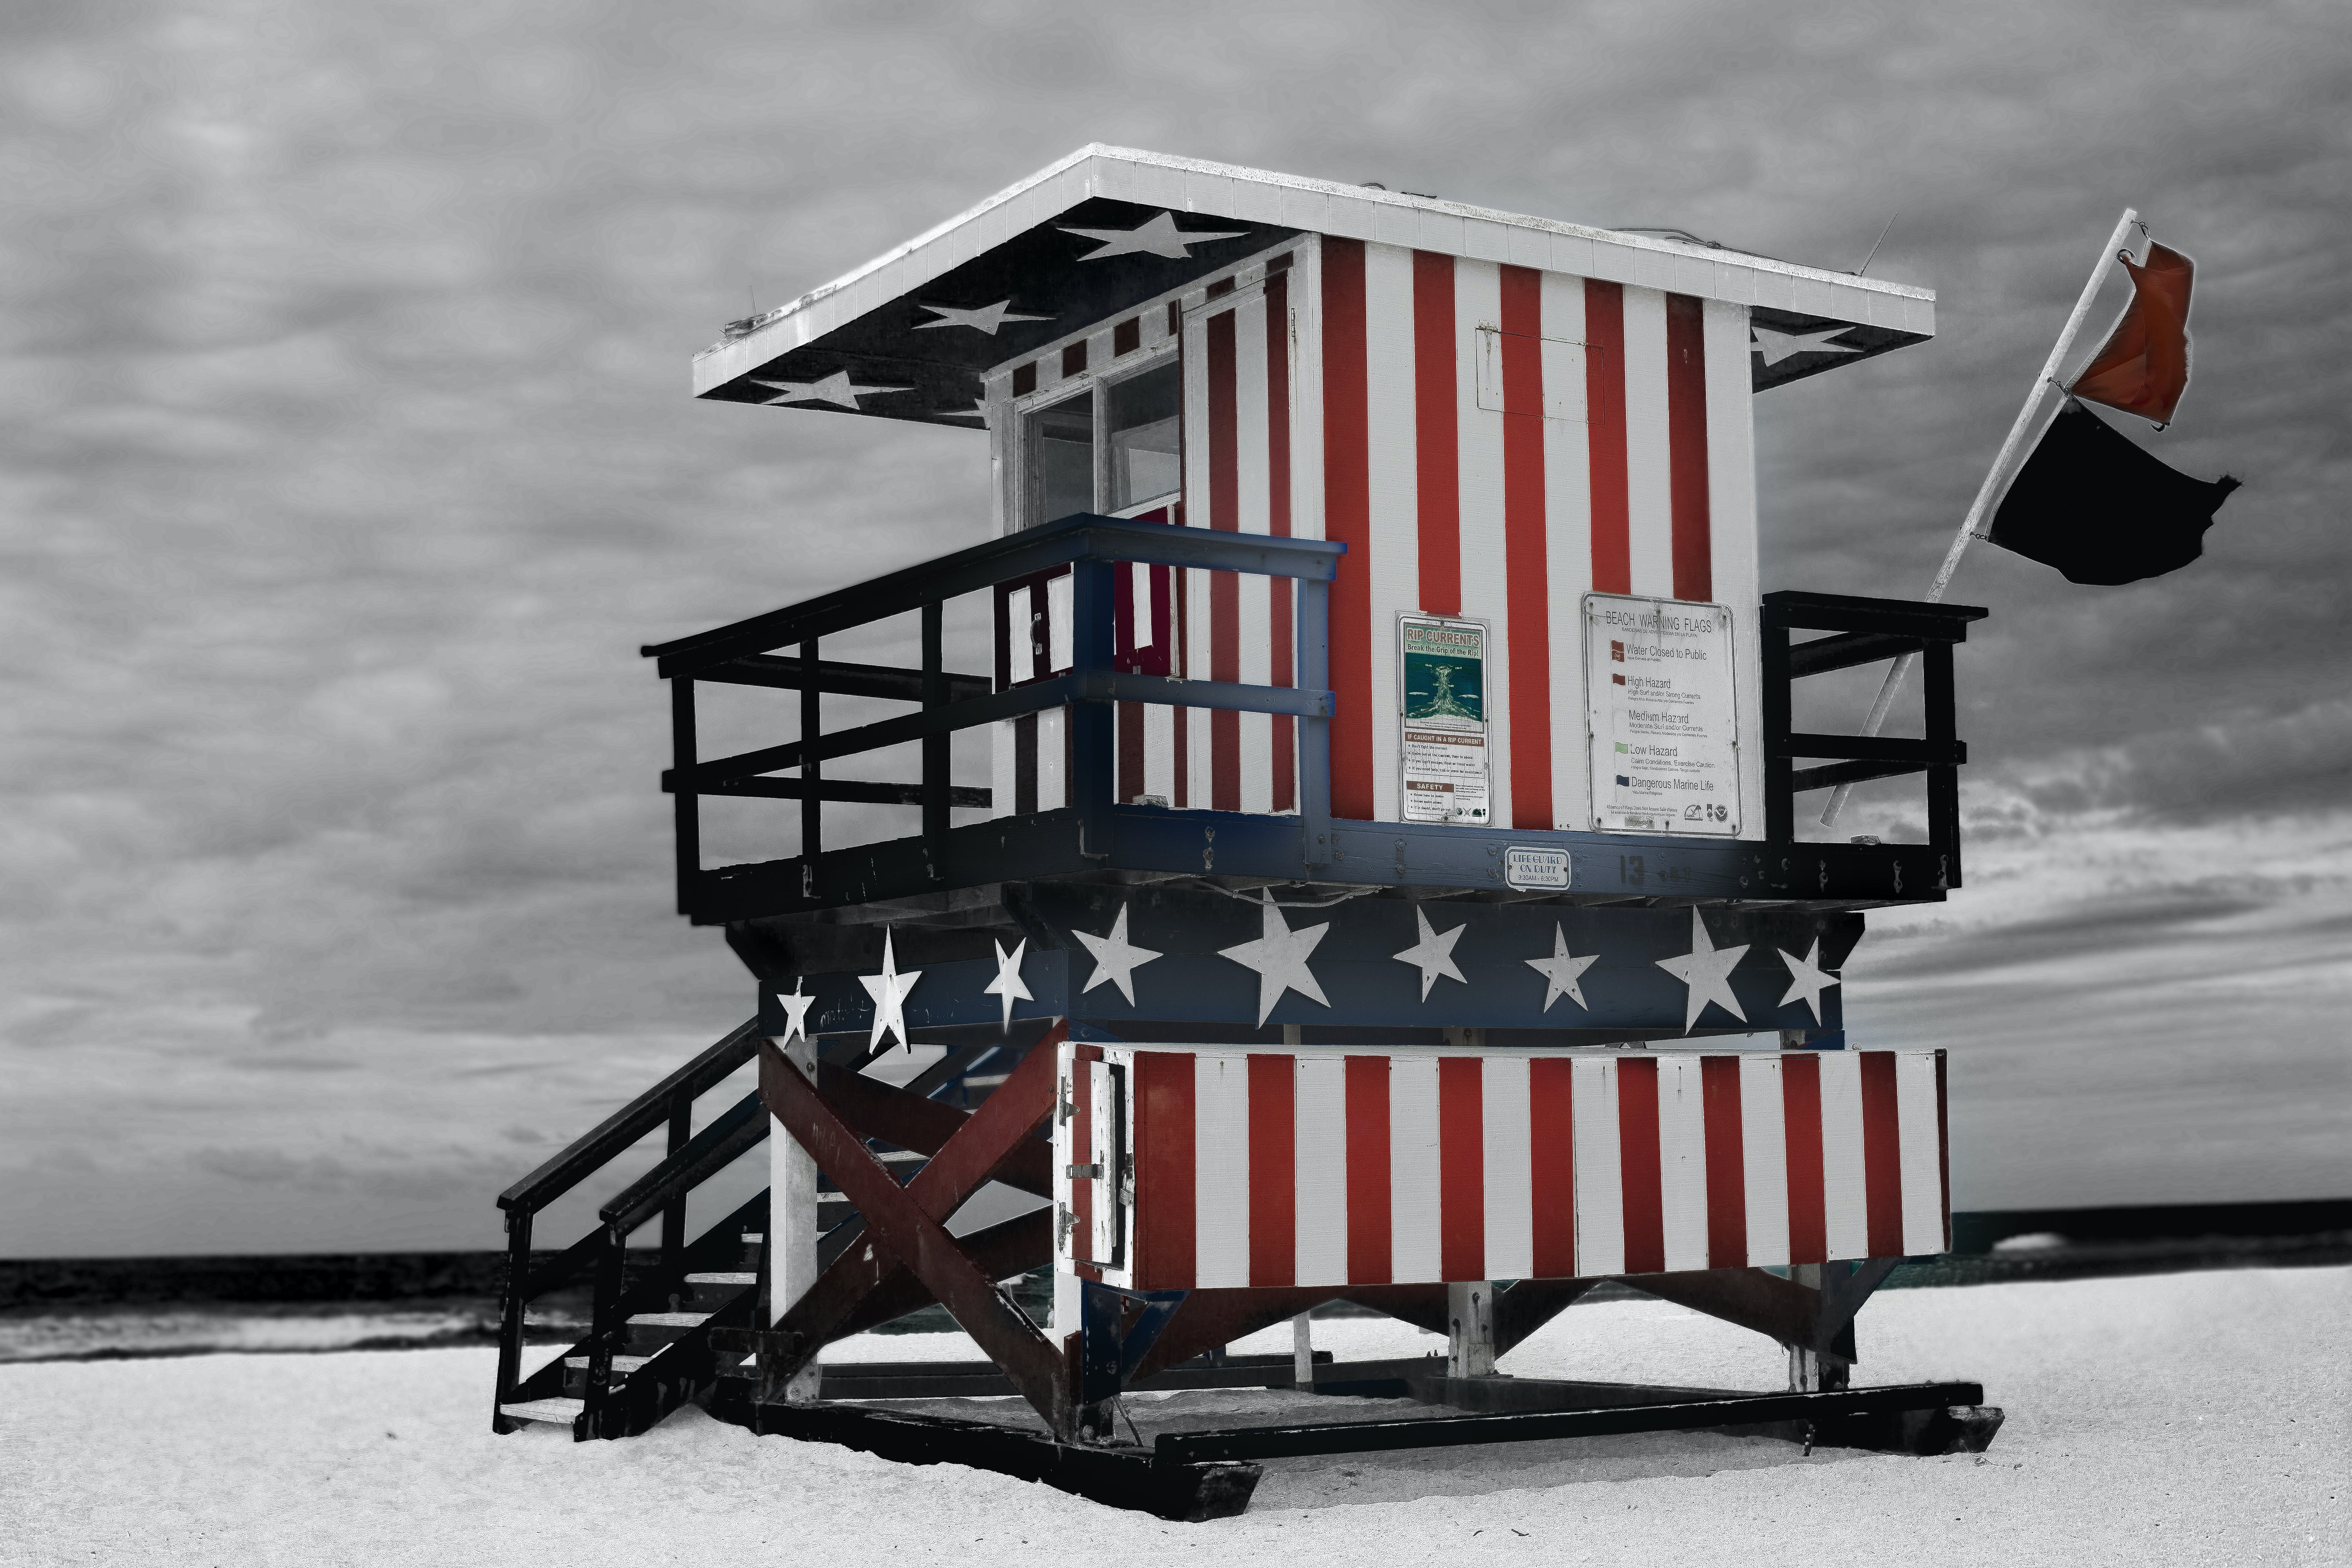 Red and Blue Striped Shed on Sand